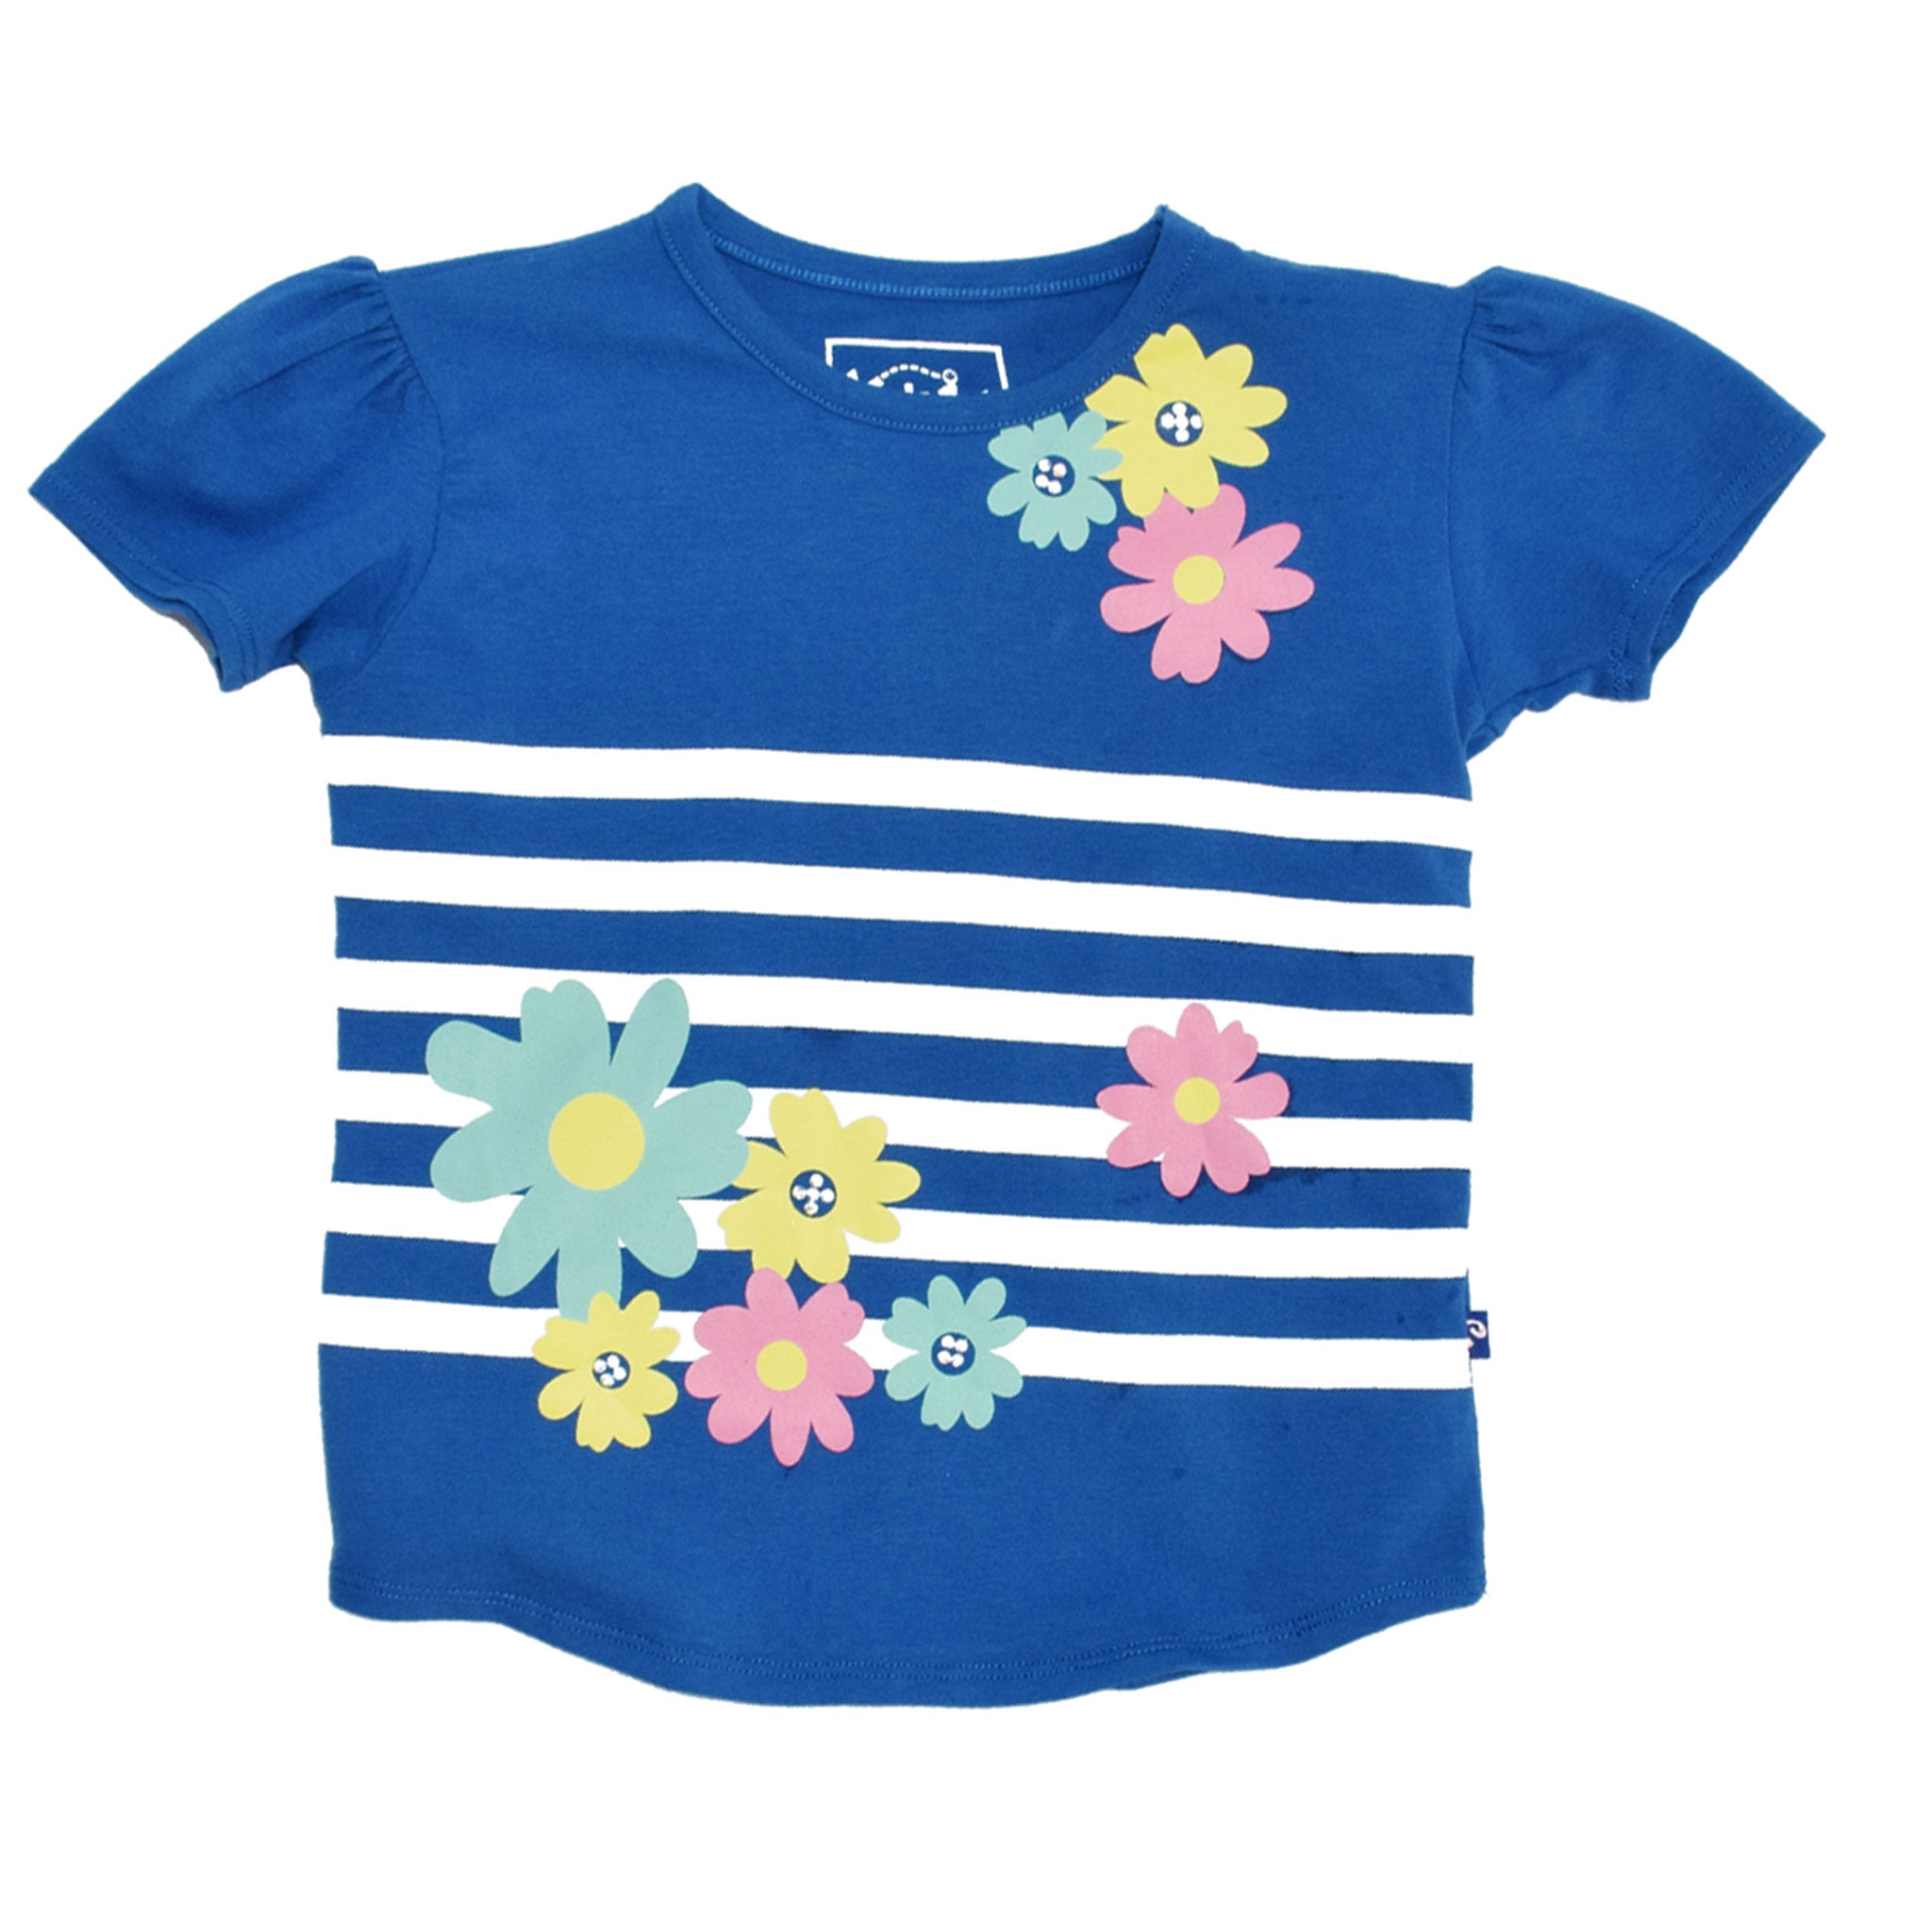 GIRL'S PRINTED TEE - BLUE / FLOWERS WITH STRIPES